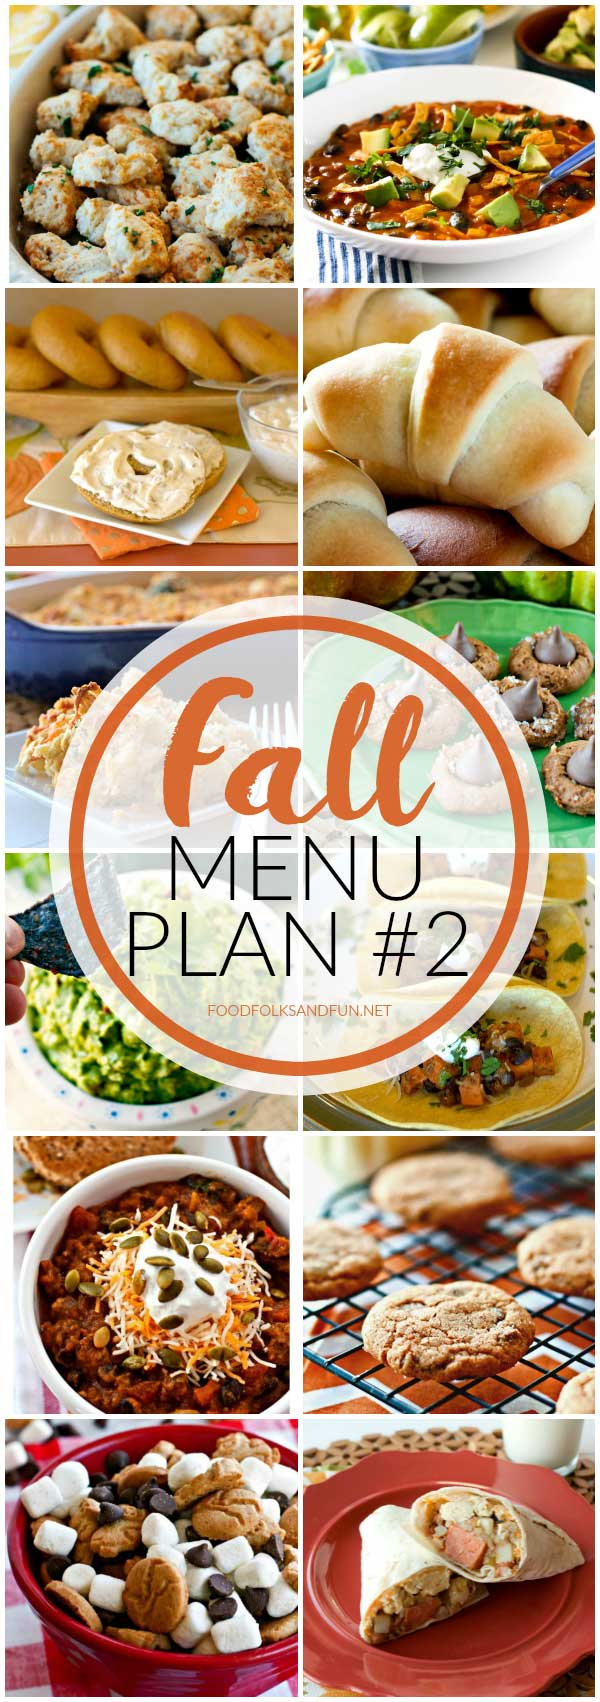 Your week just got a whole lot easier with this Fall Menu Plan #2! It includes 6 dinners, 3 snacks and treats, and 2 breakfast ideas that are all perfect for Fall!